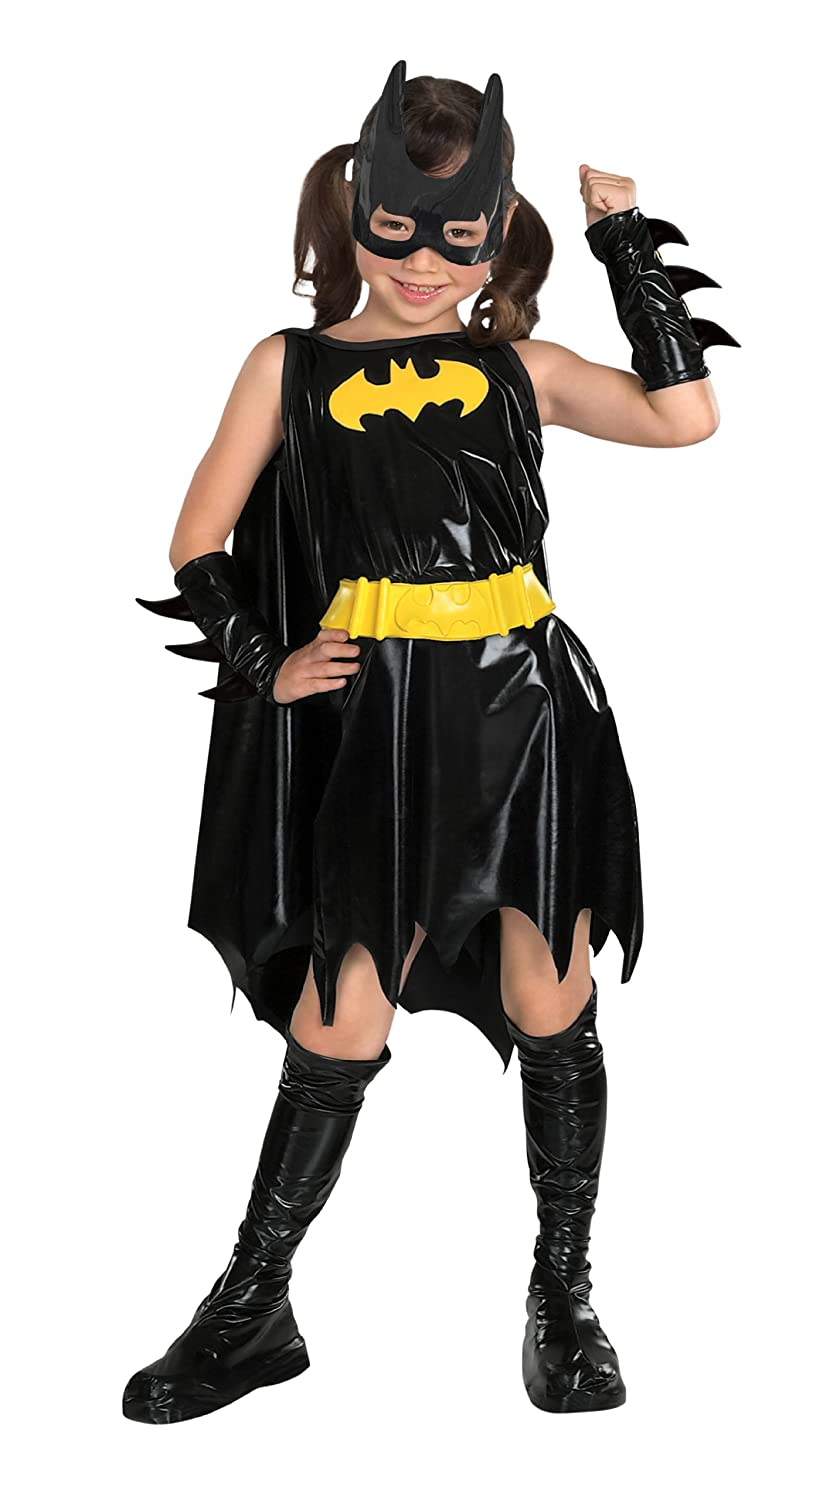 sc 1 st  Amazon.com & Amazon.com: DC Super Heroes Childu0027s Batgirl Costume Large: Toys u0026 Games